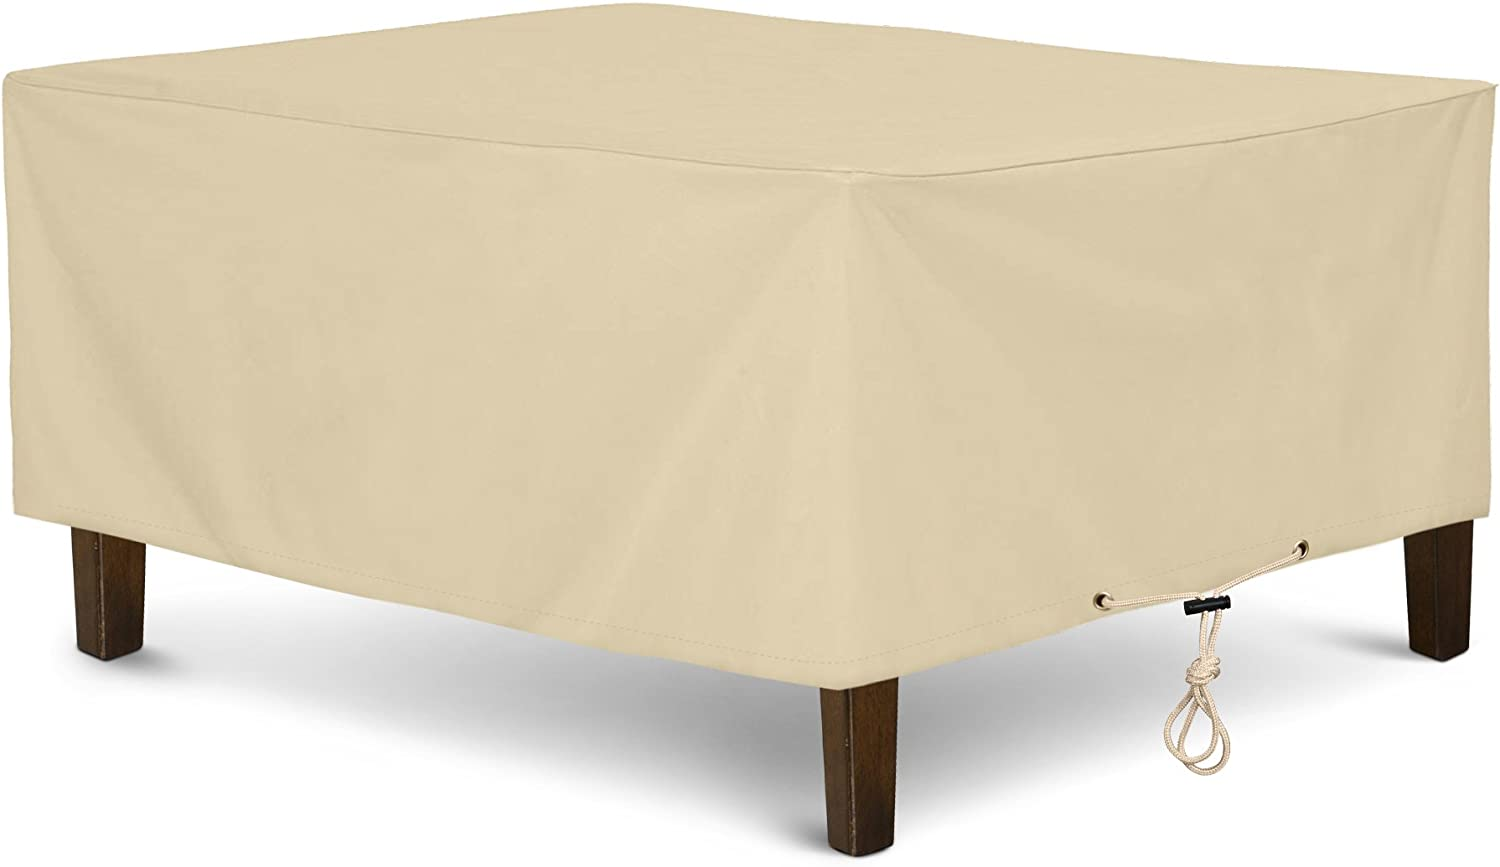 """SunPatio Outdoor Ottoman Cover, Rectangular Coffee Table Cover, Heavy Duty Waterproof Patio Furniture Side Table Cover, All Weather Protection, 40"""" L x 30"""" W x 18"""" H, Beige"""